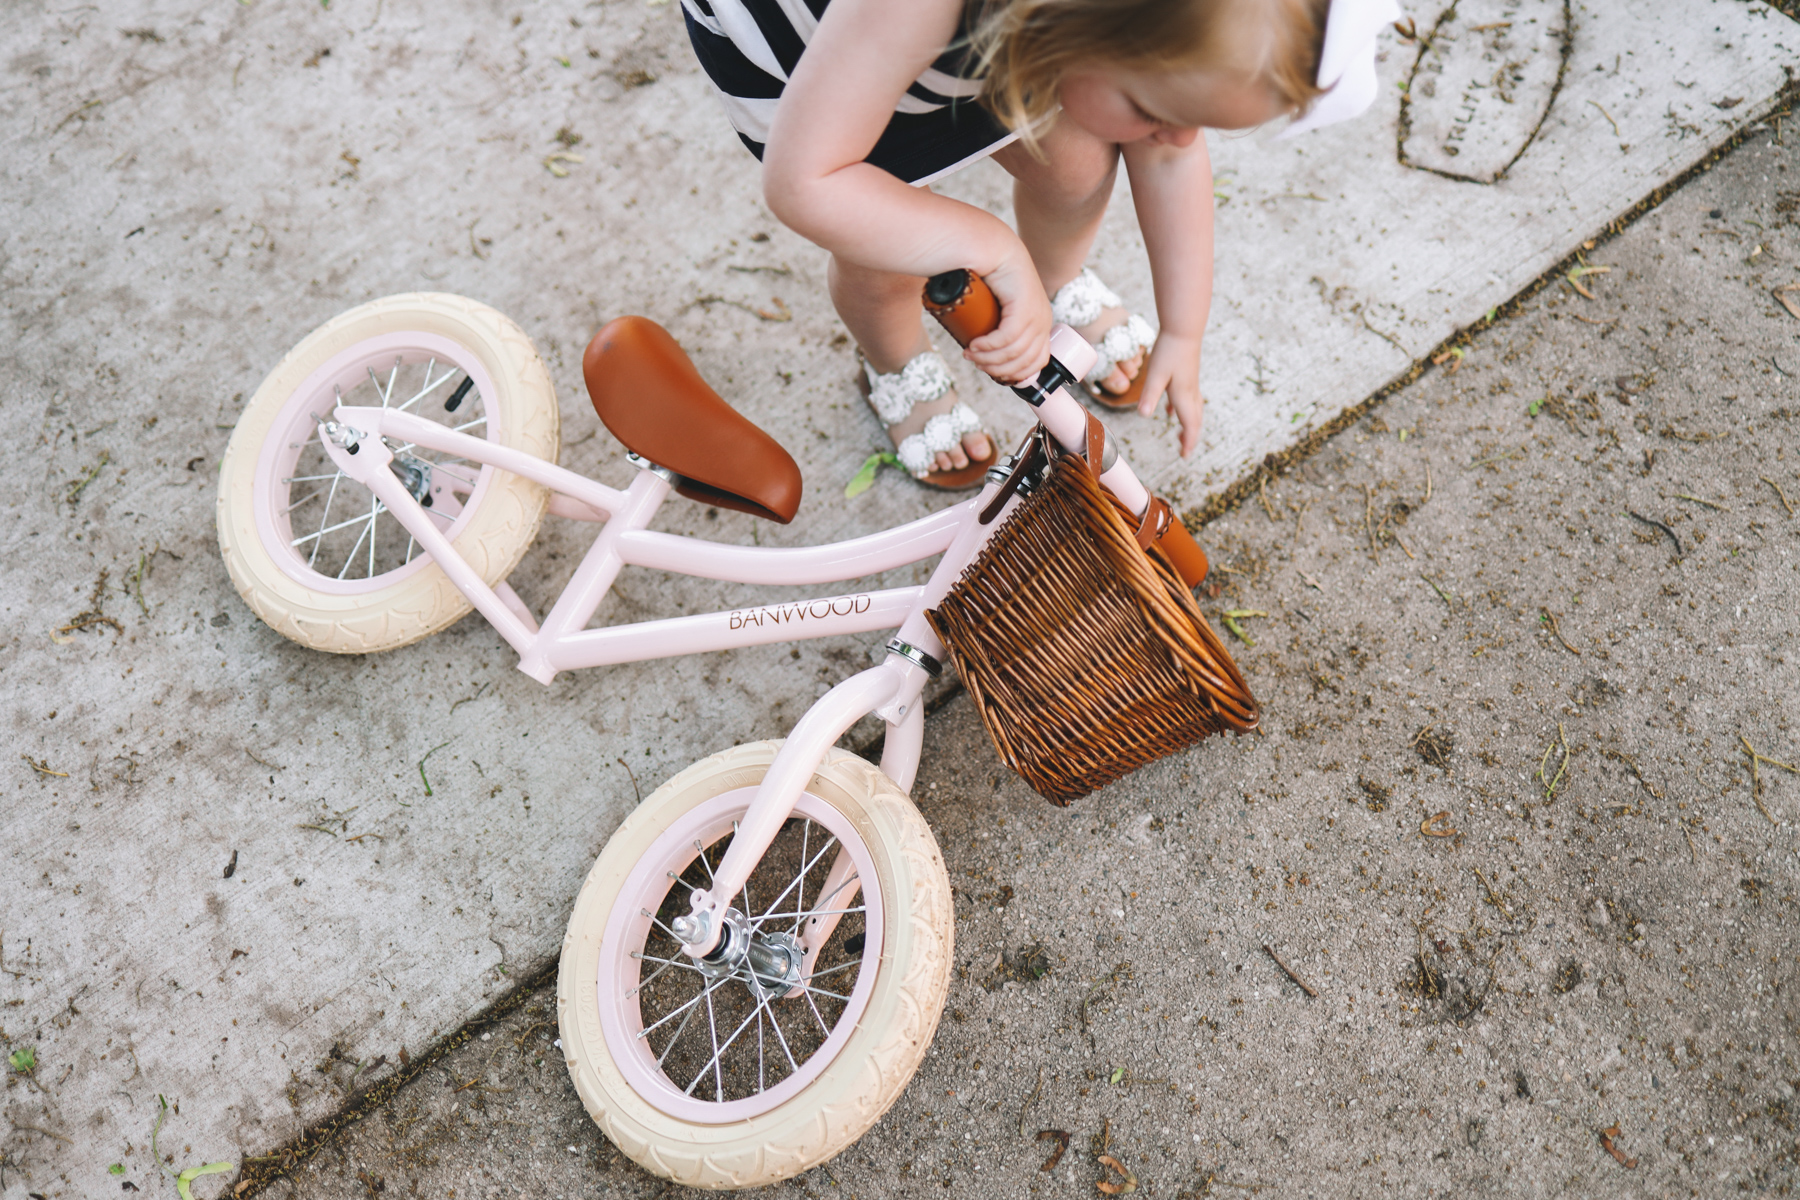 Banwood Balance Bike in Pink by Kelly Larkin